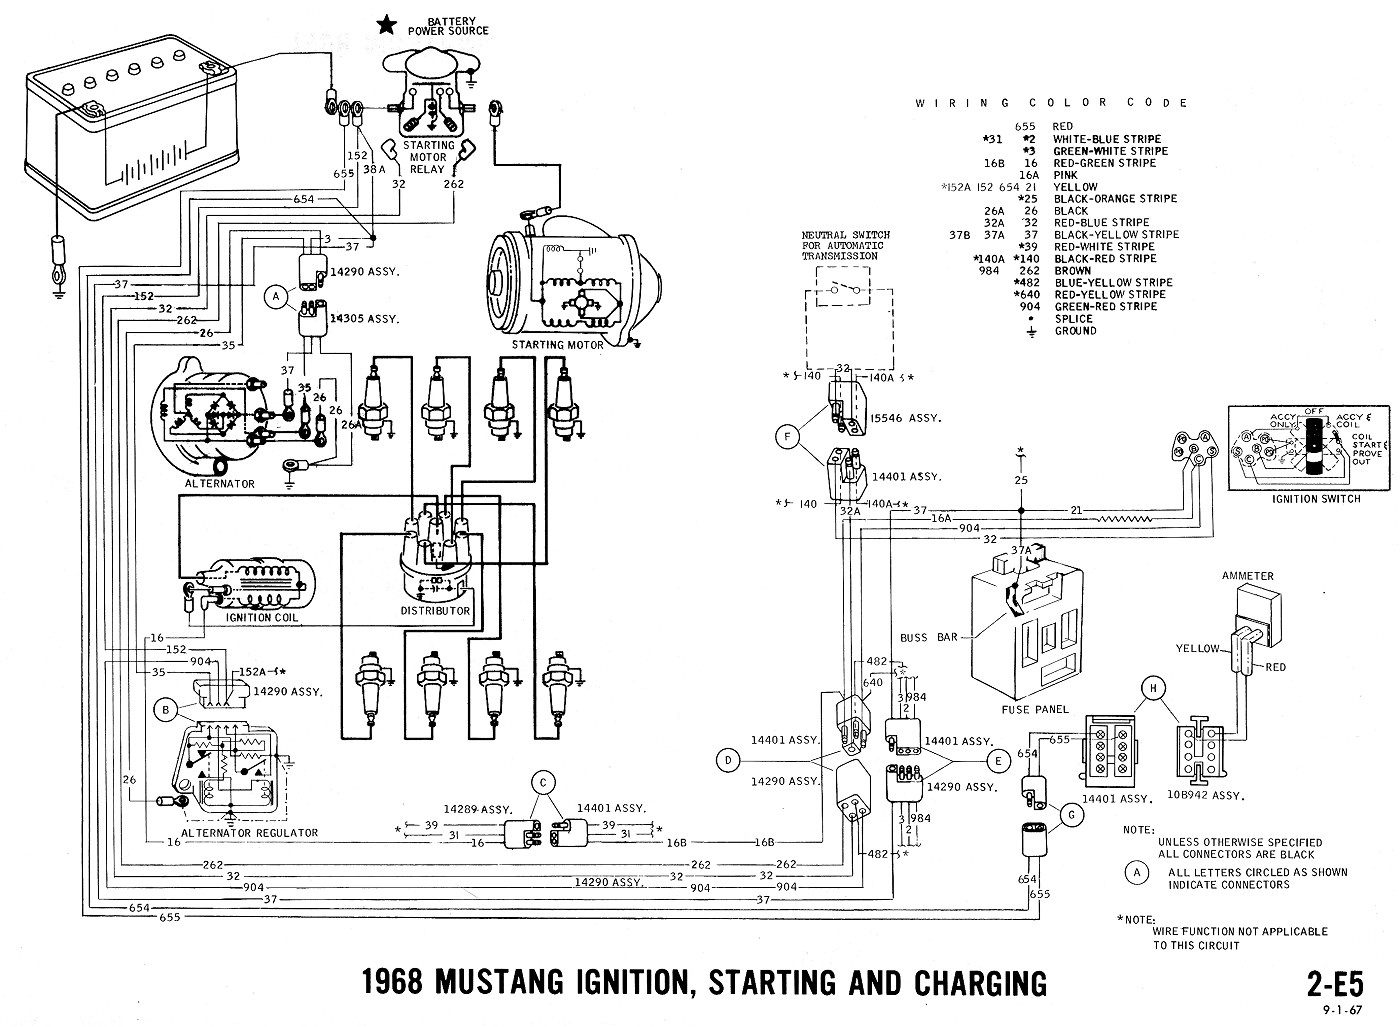 E5 1968 mustang wiring diagrams evolving software 71 mustang wiring diagram at bayanpartner.co